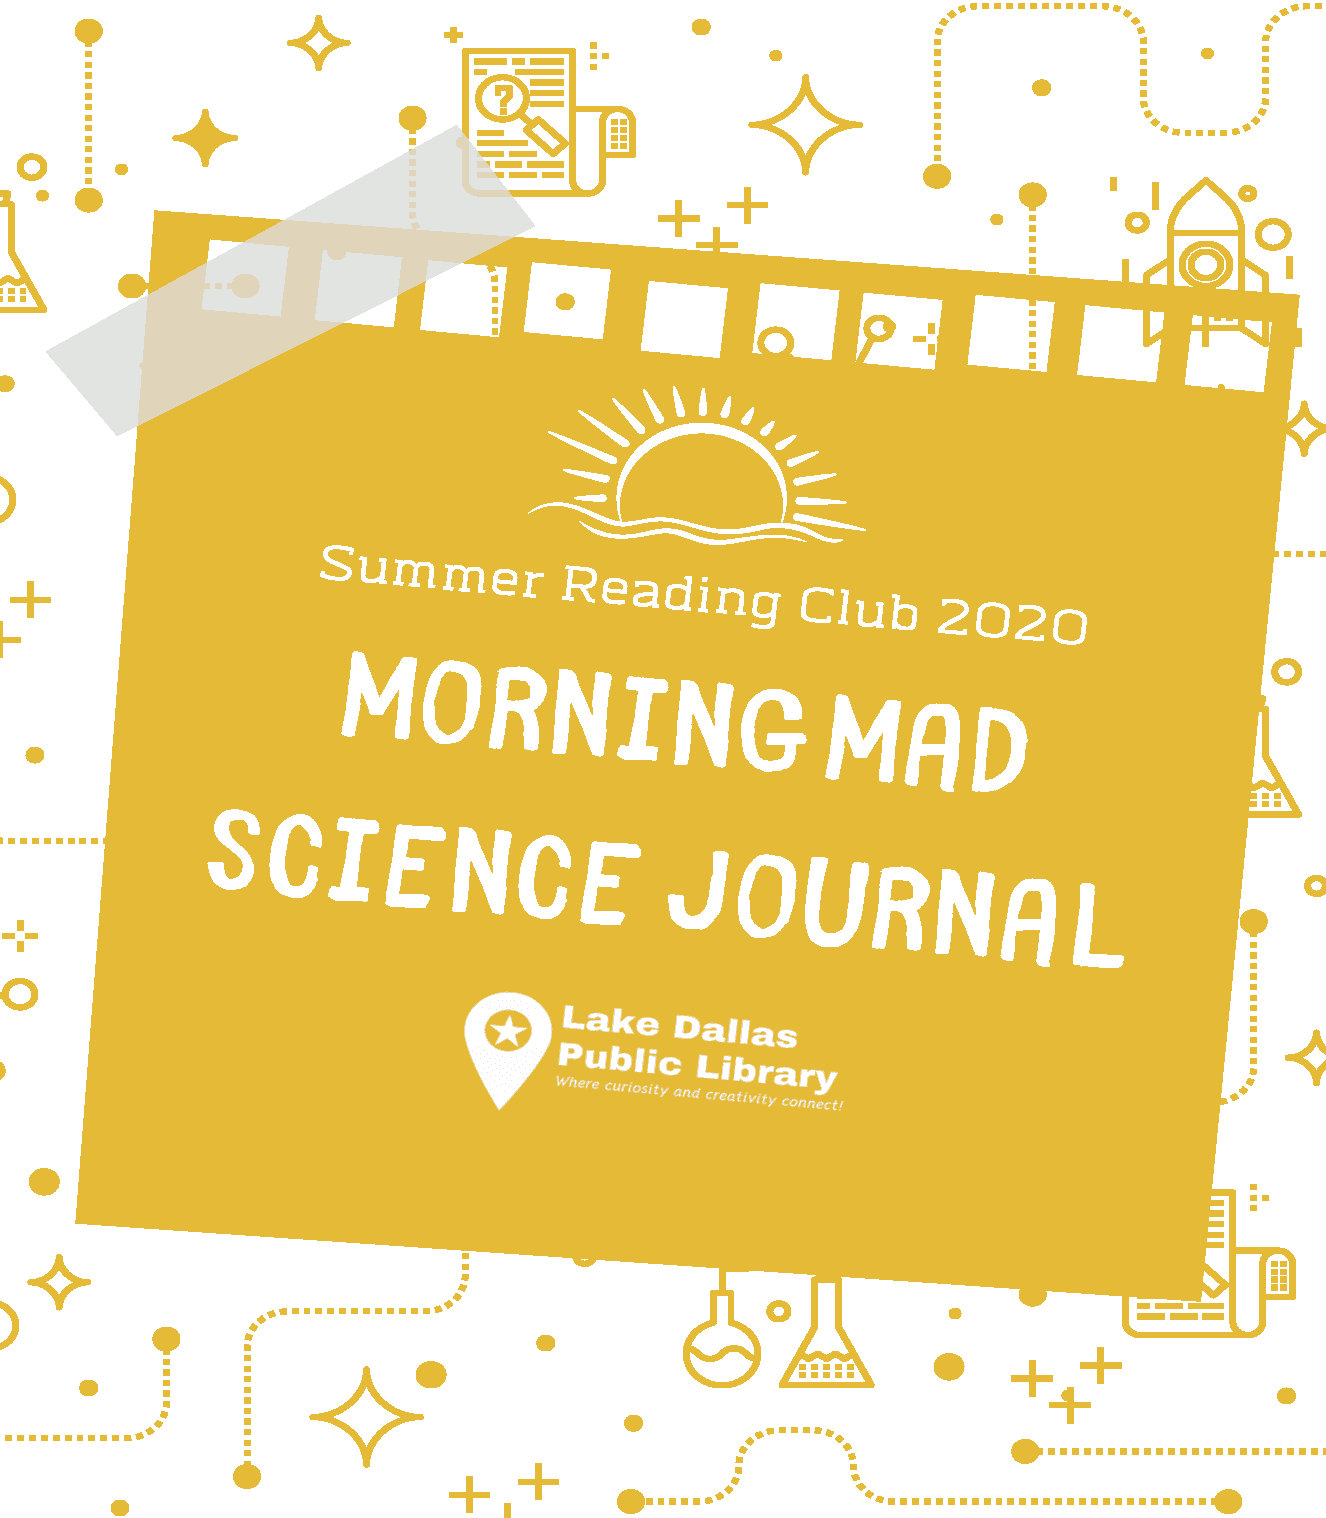 Morning Mad Science Journal Complete_Page_01 Opens in new window